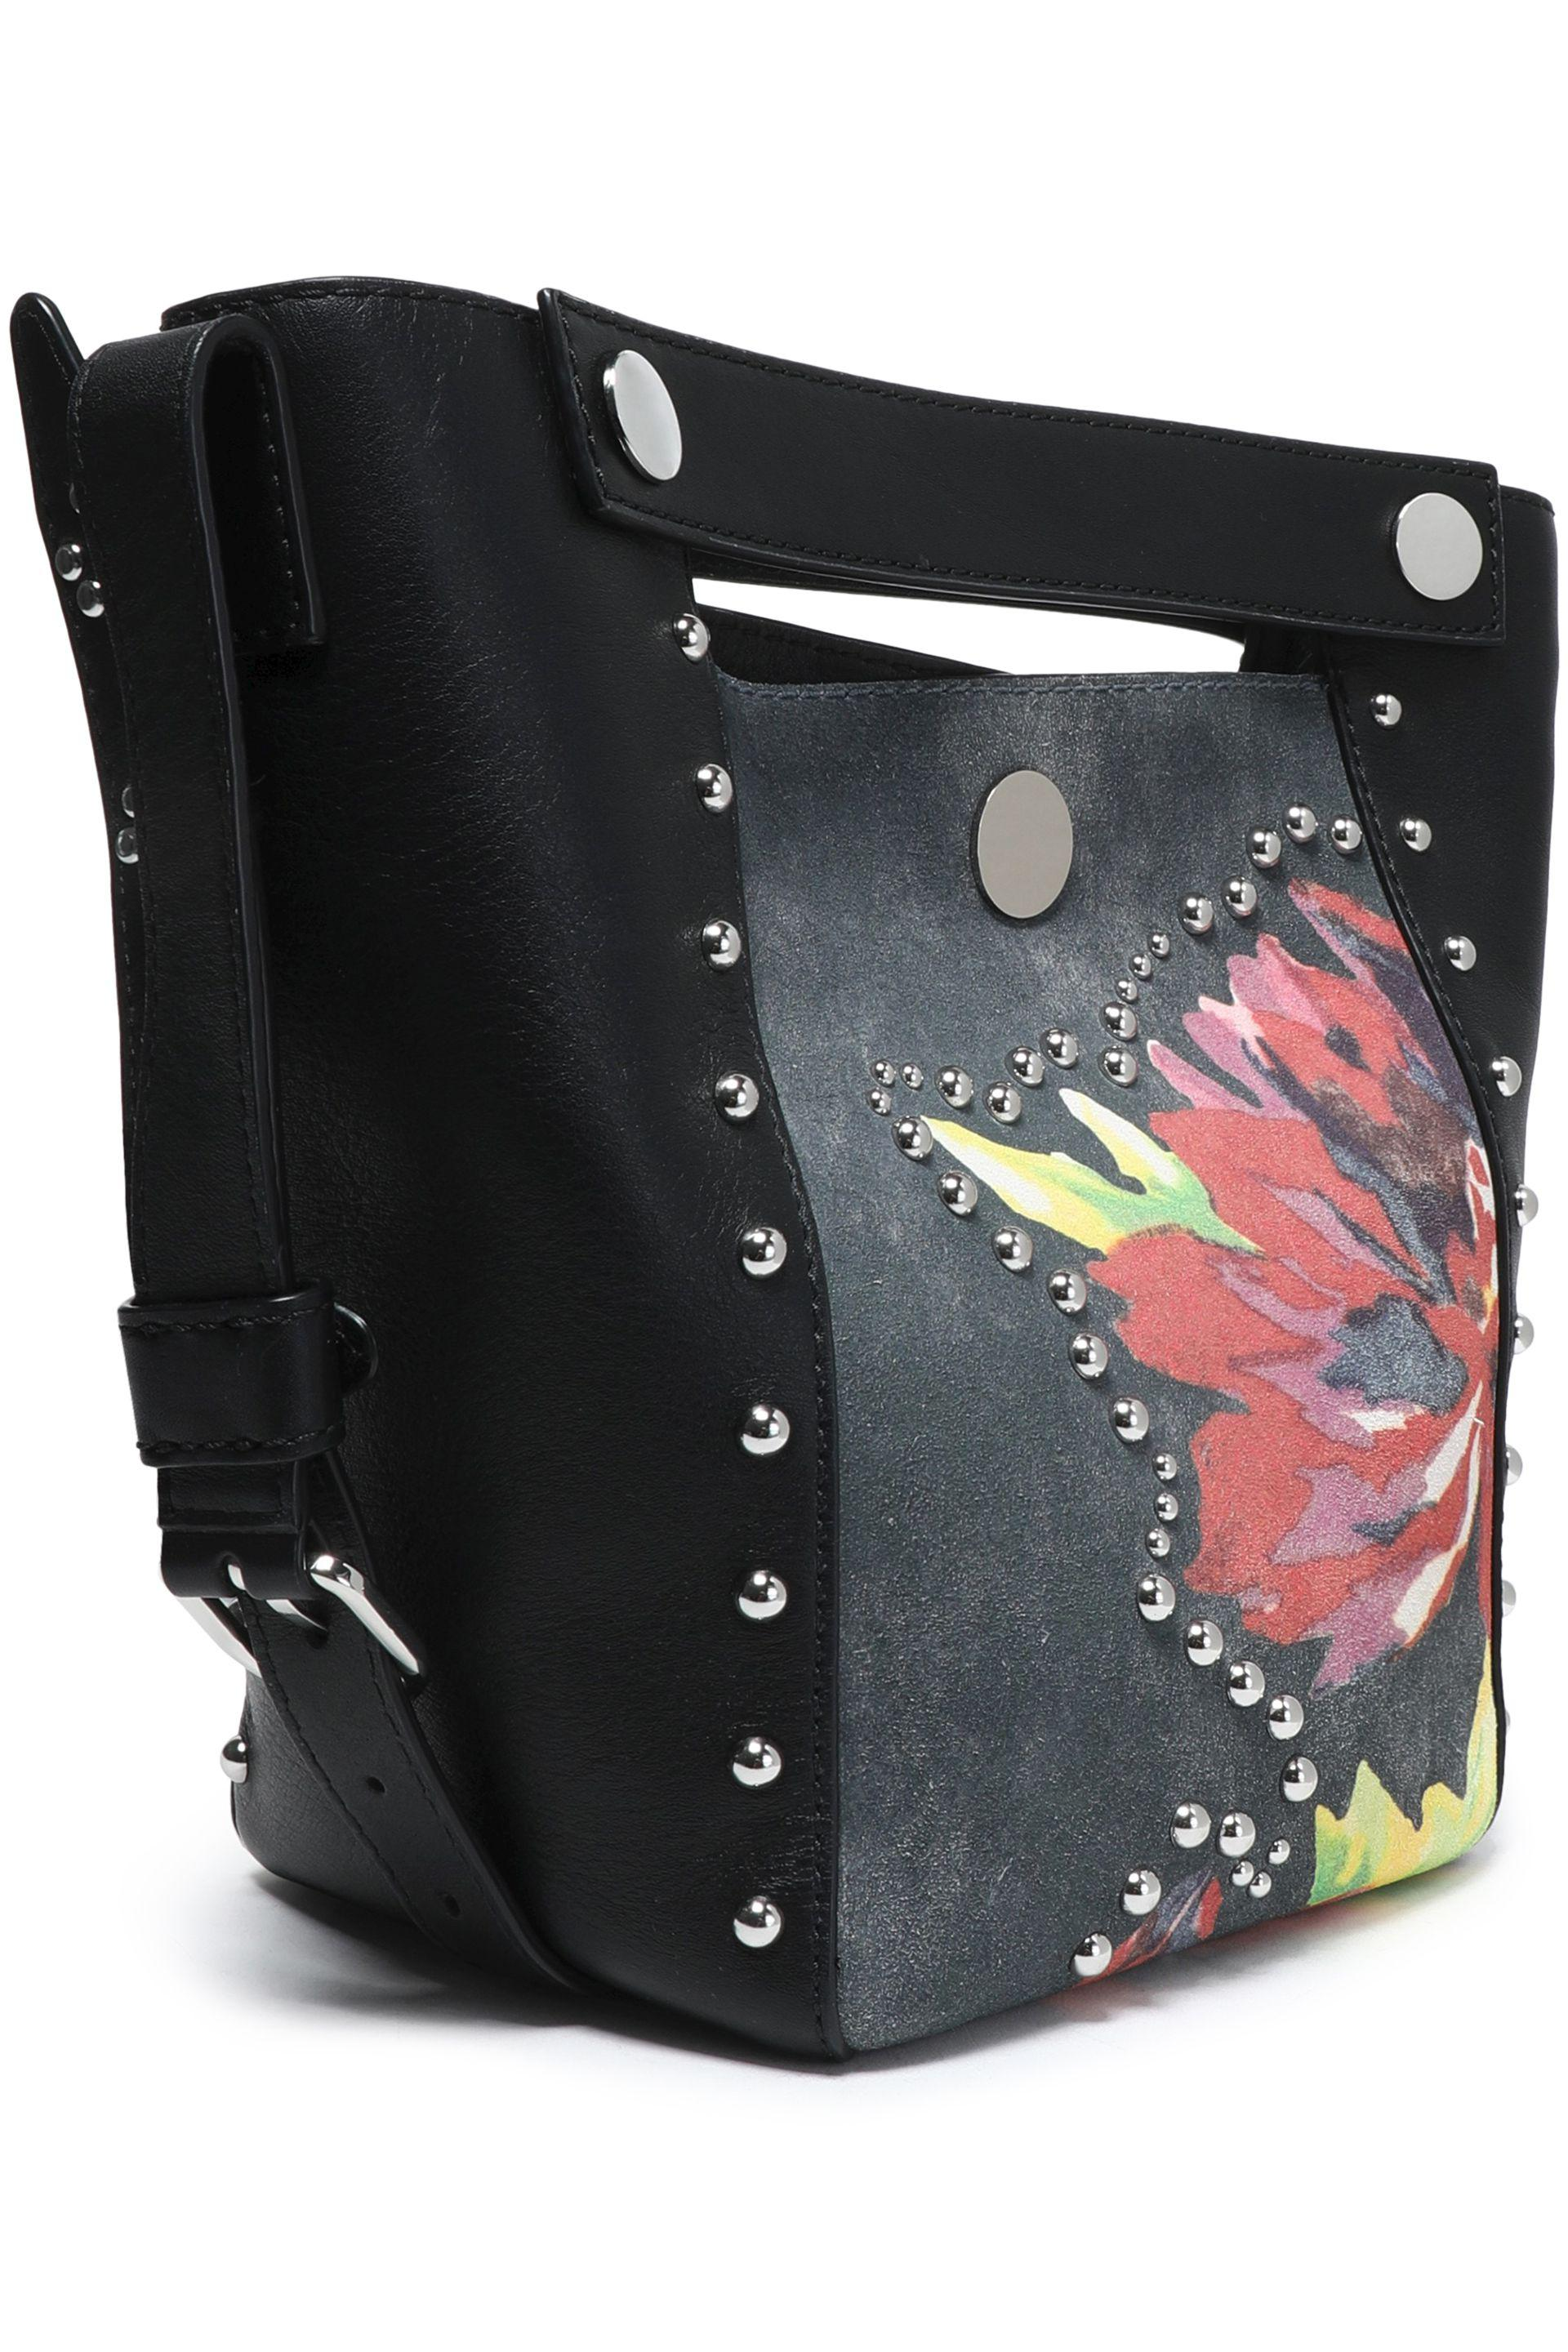 3.1 Phillip Lim Woman Studded Paneled Floral-print Leather Bucket Bag Black Size 3.1 Phillip Lim